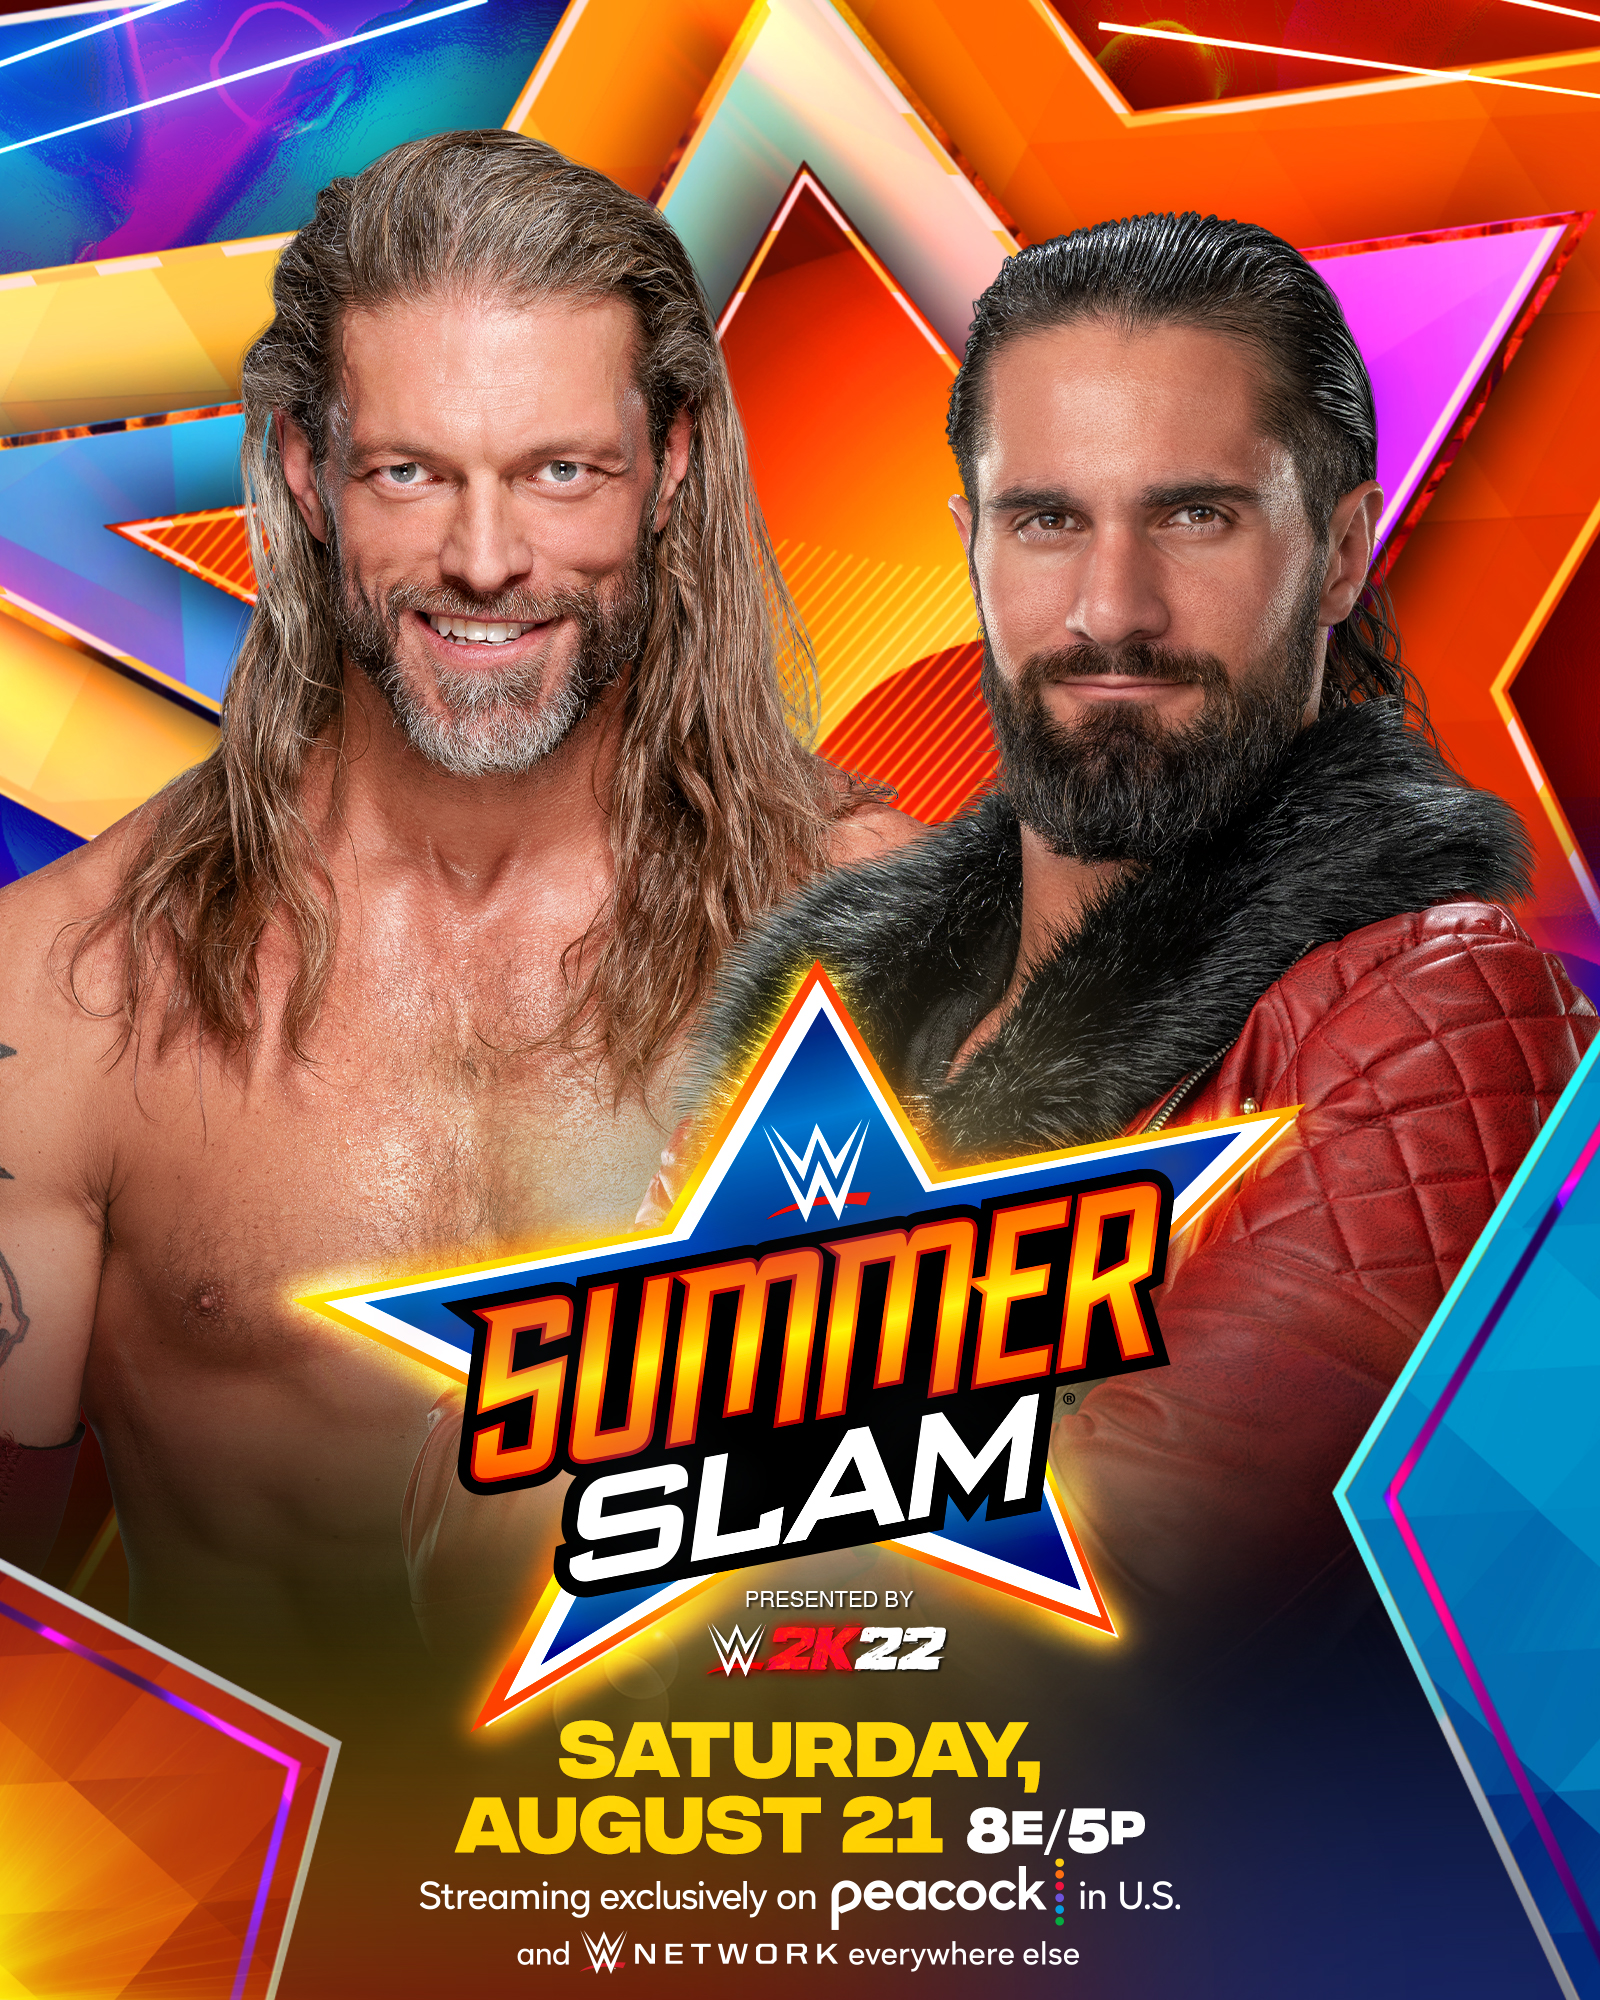 WWE Summerslam 2021: Hall Of Famer Edge Booked To Compete In Dream Match 111